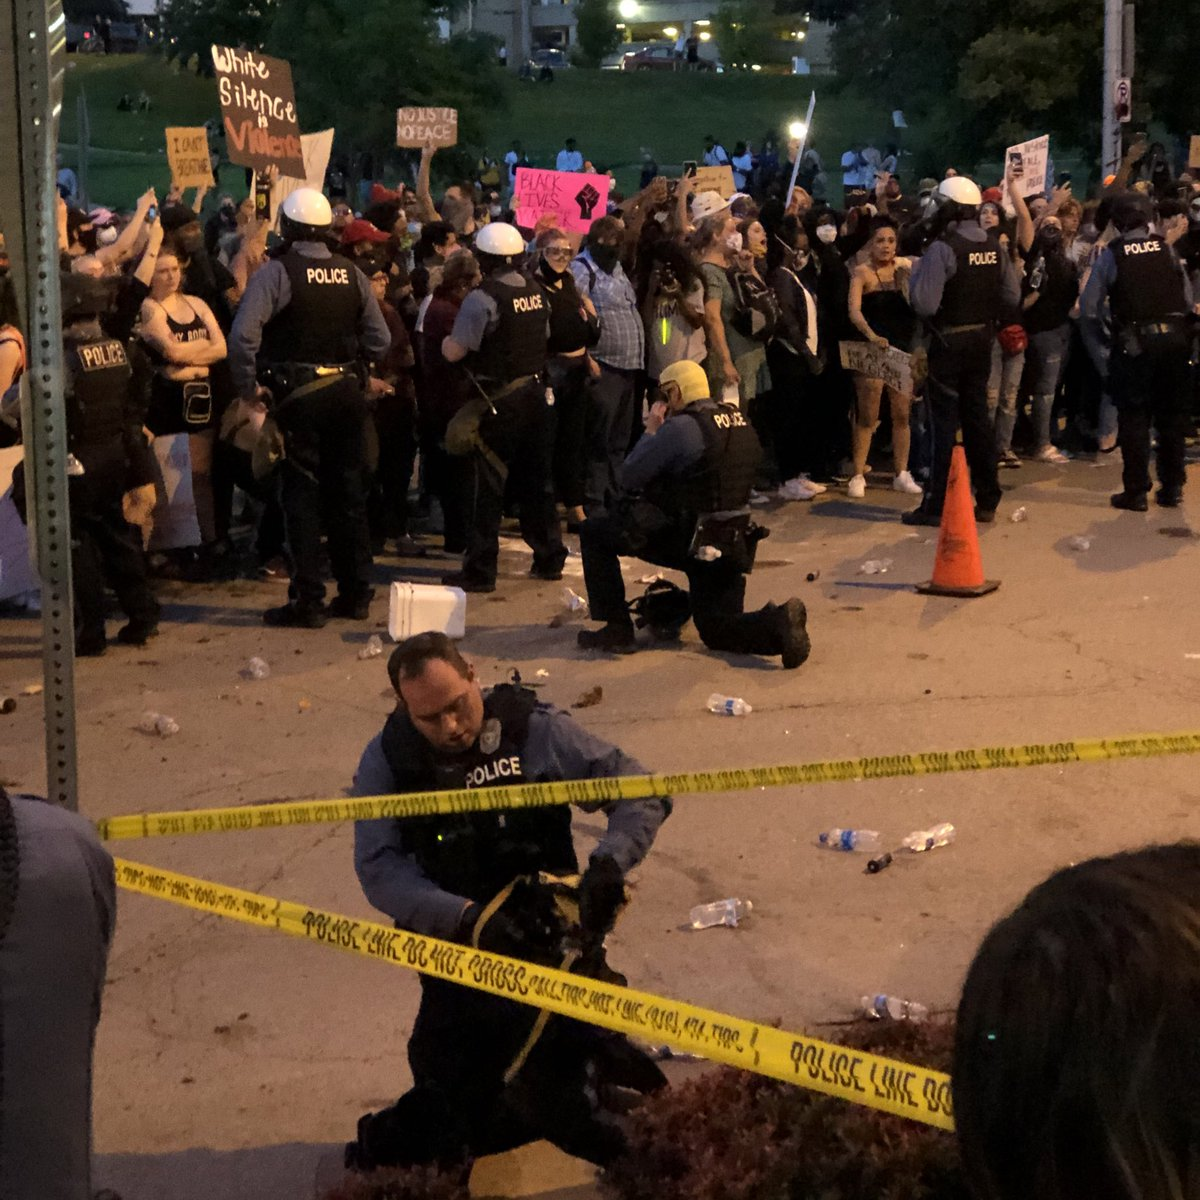 KC Police take their masks off and take a knee. Protestors erupt into applause. @41actionnews https://t.co/LDD0xEUIFl